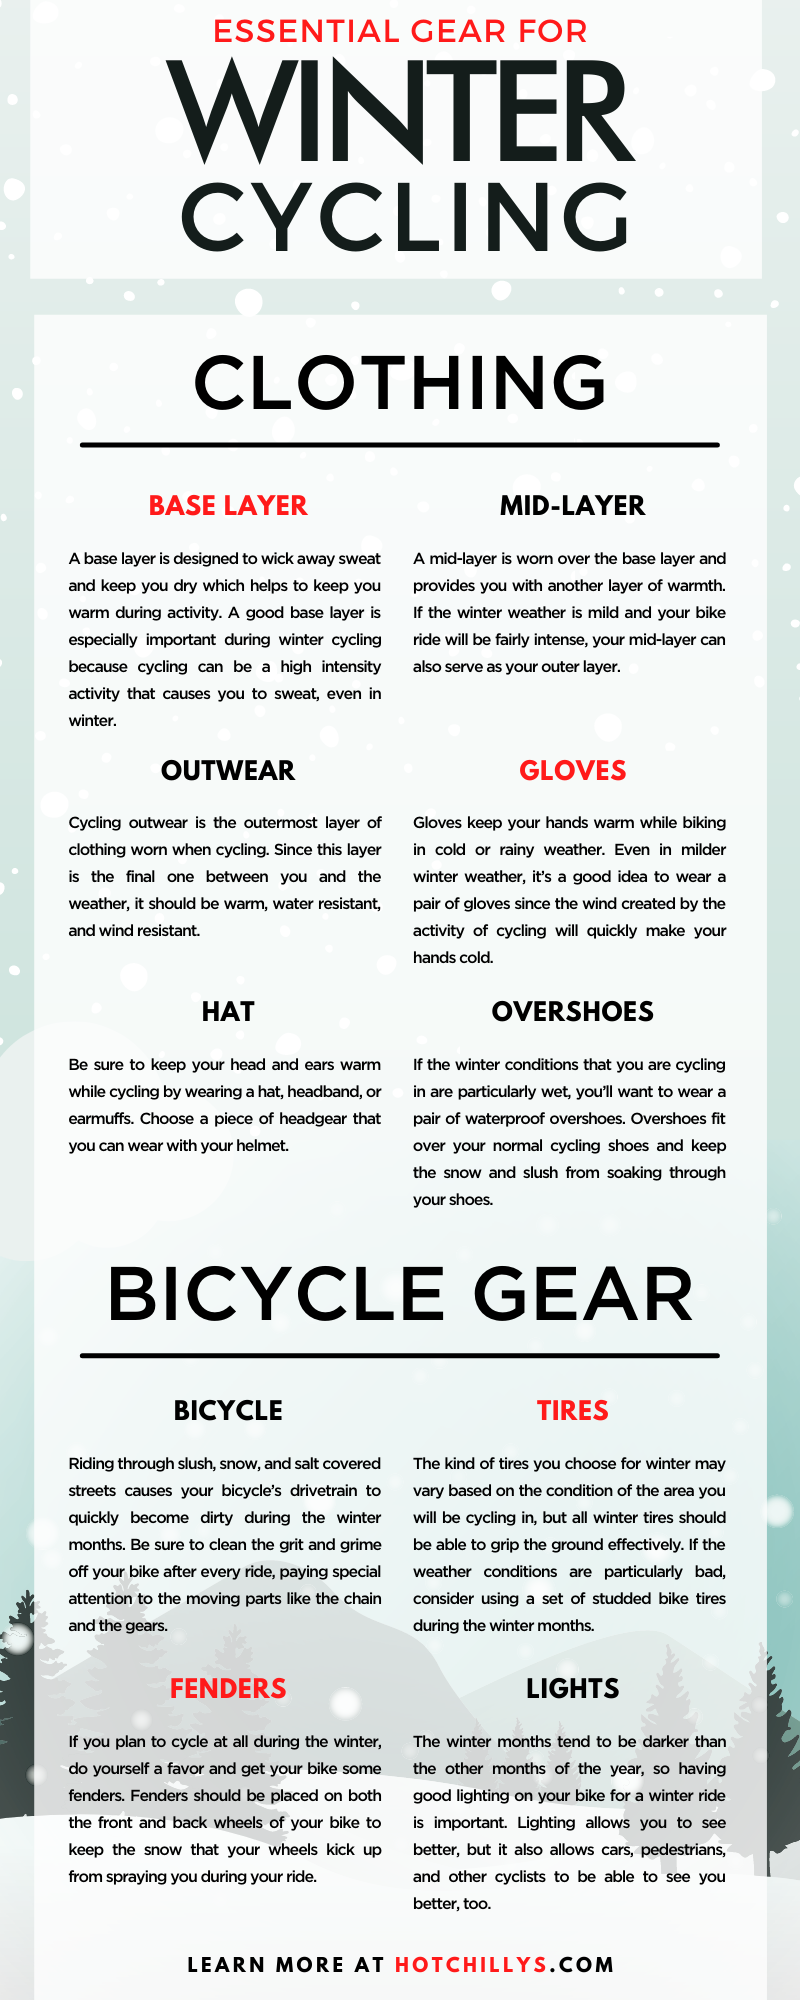 Essential Gear for Winter Cycling